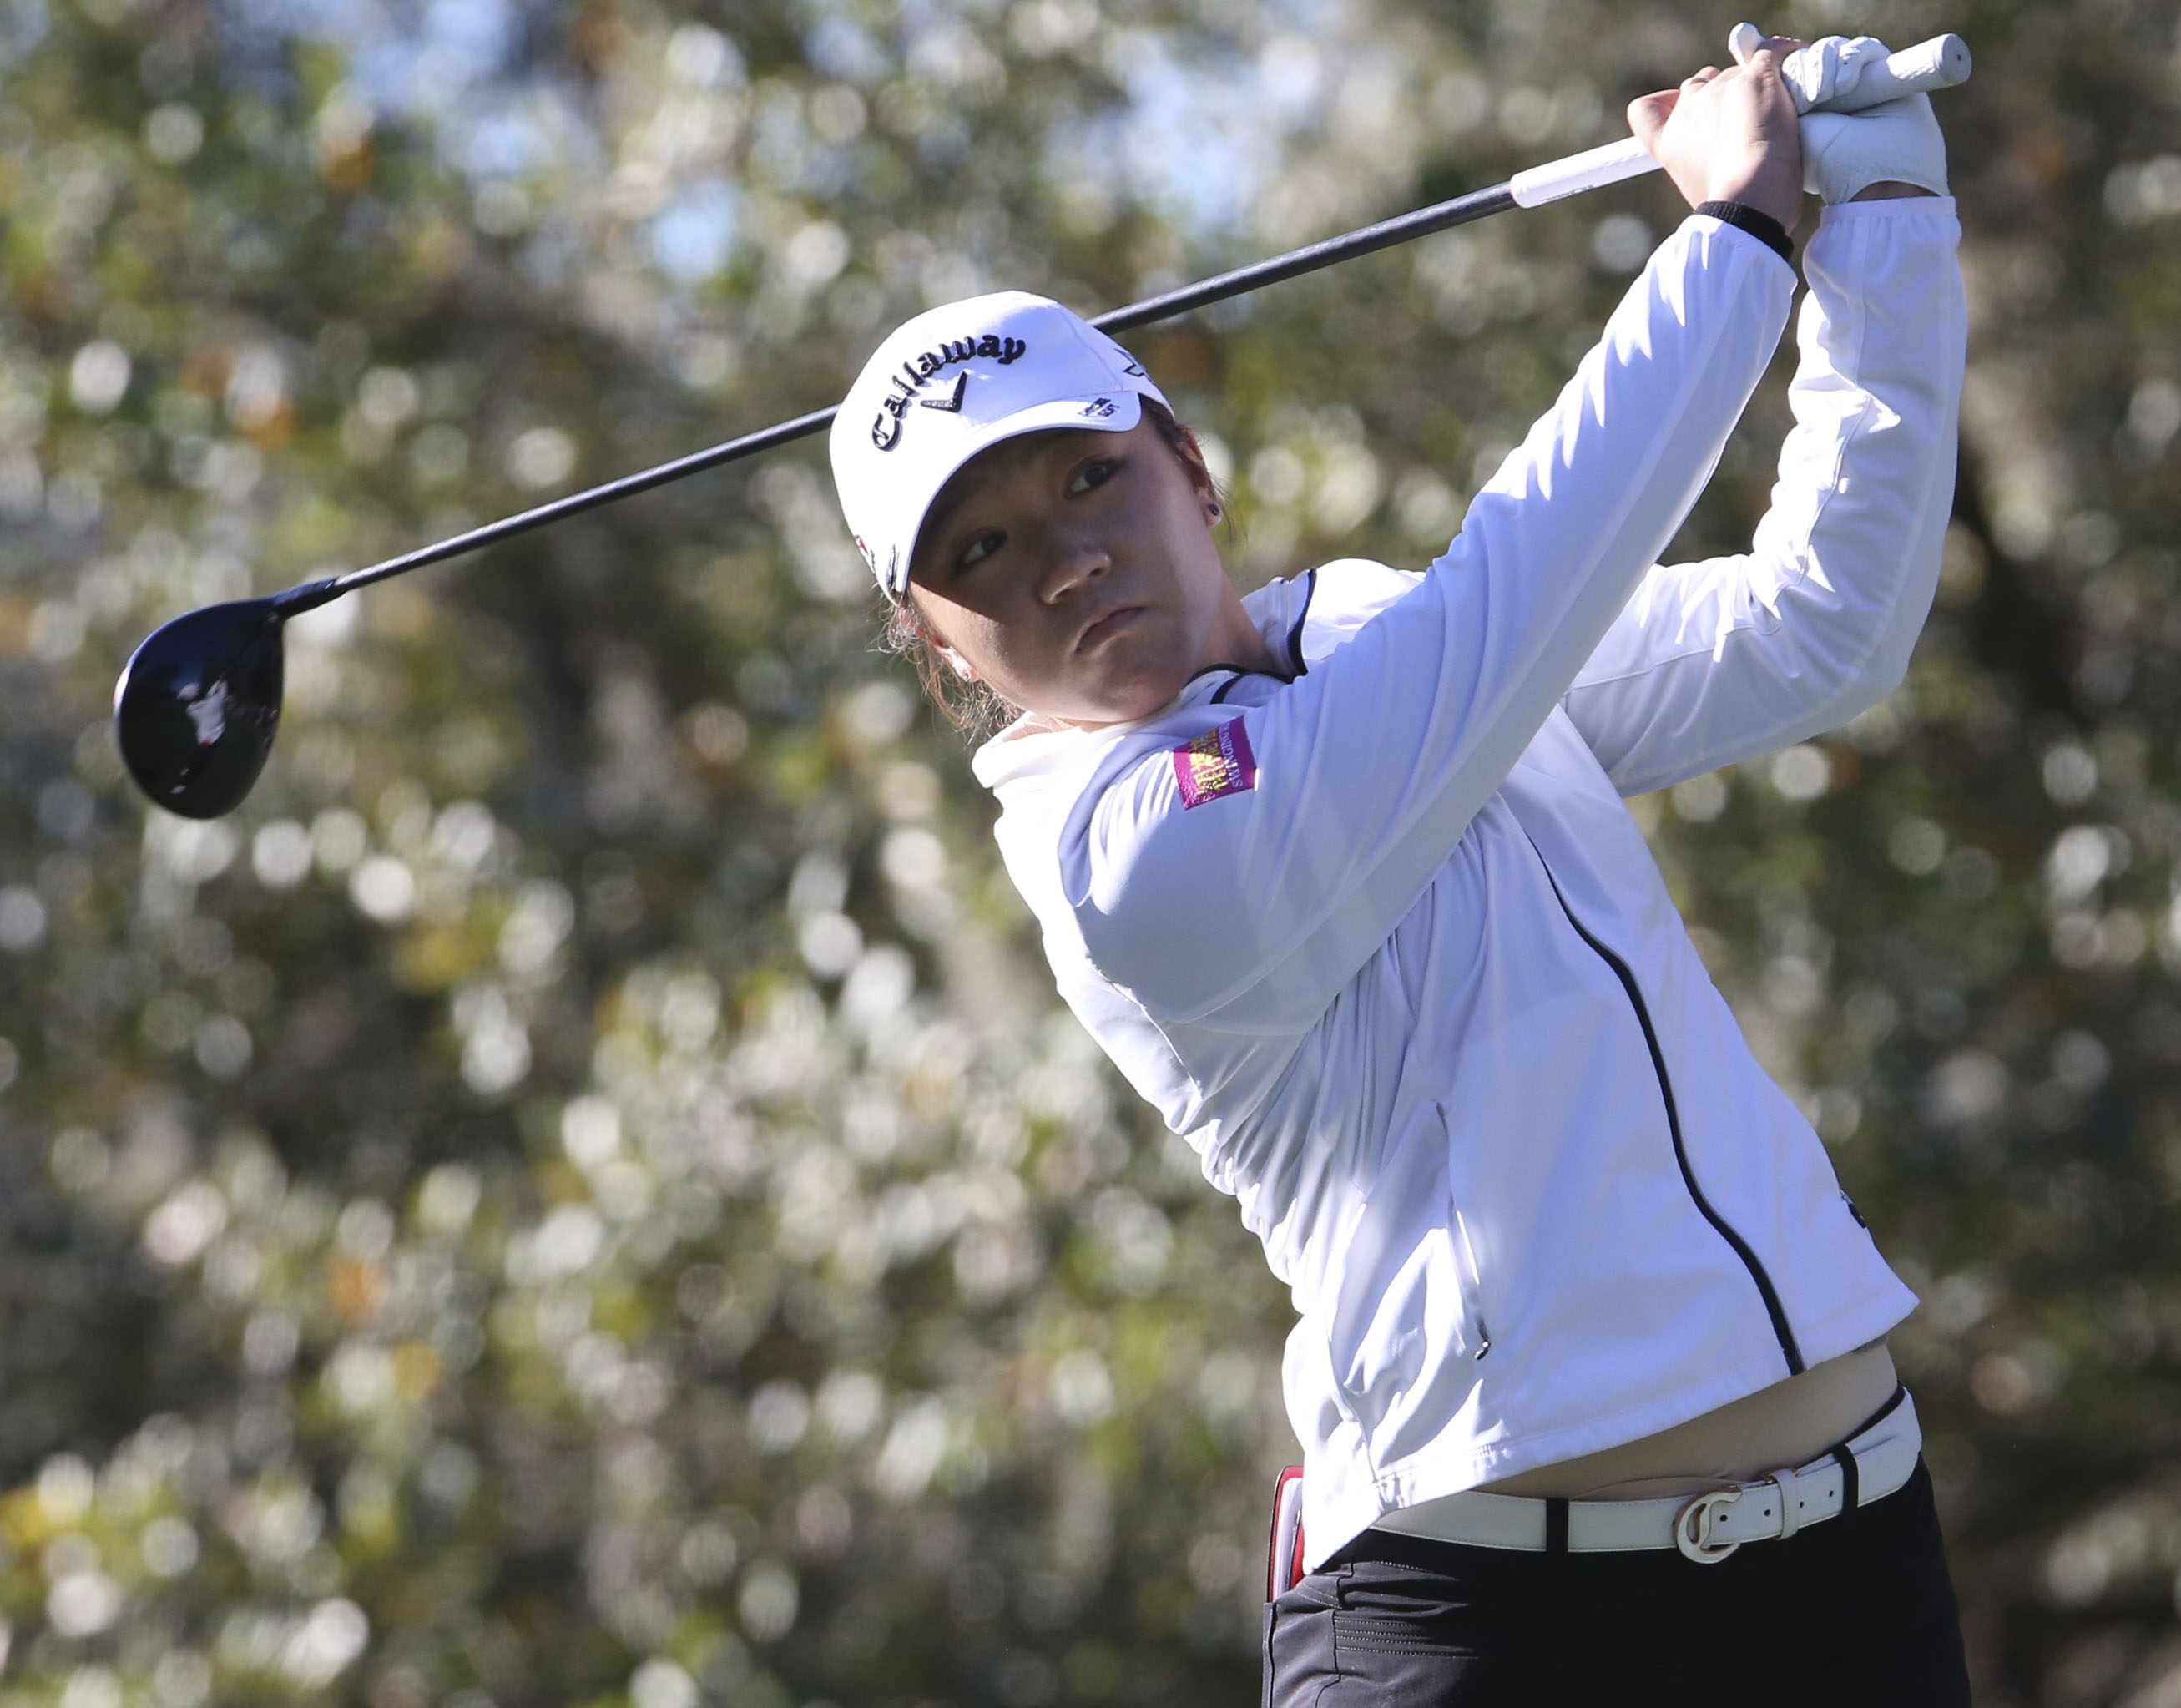 Lydia Ko watches the flight of her ball from the first tee during the third round of the LPGA Coates Golf Championship at the Golden Ocala Golf and Equestrian Club in Ocala, Fla. on Friday, Feb. 5, 2016. (Bruce Ackerman/Star-Banner via AP) MAGS OUT;